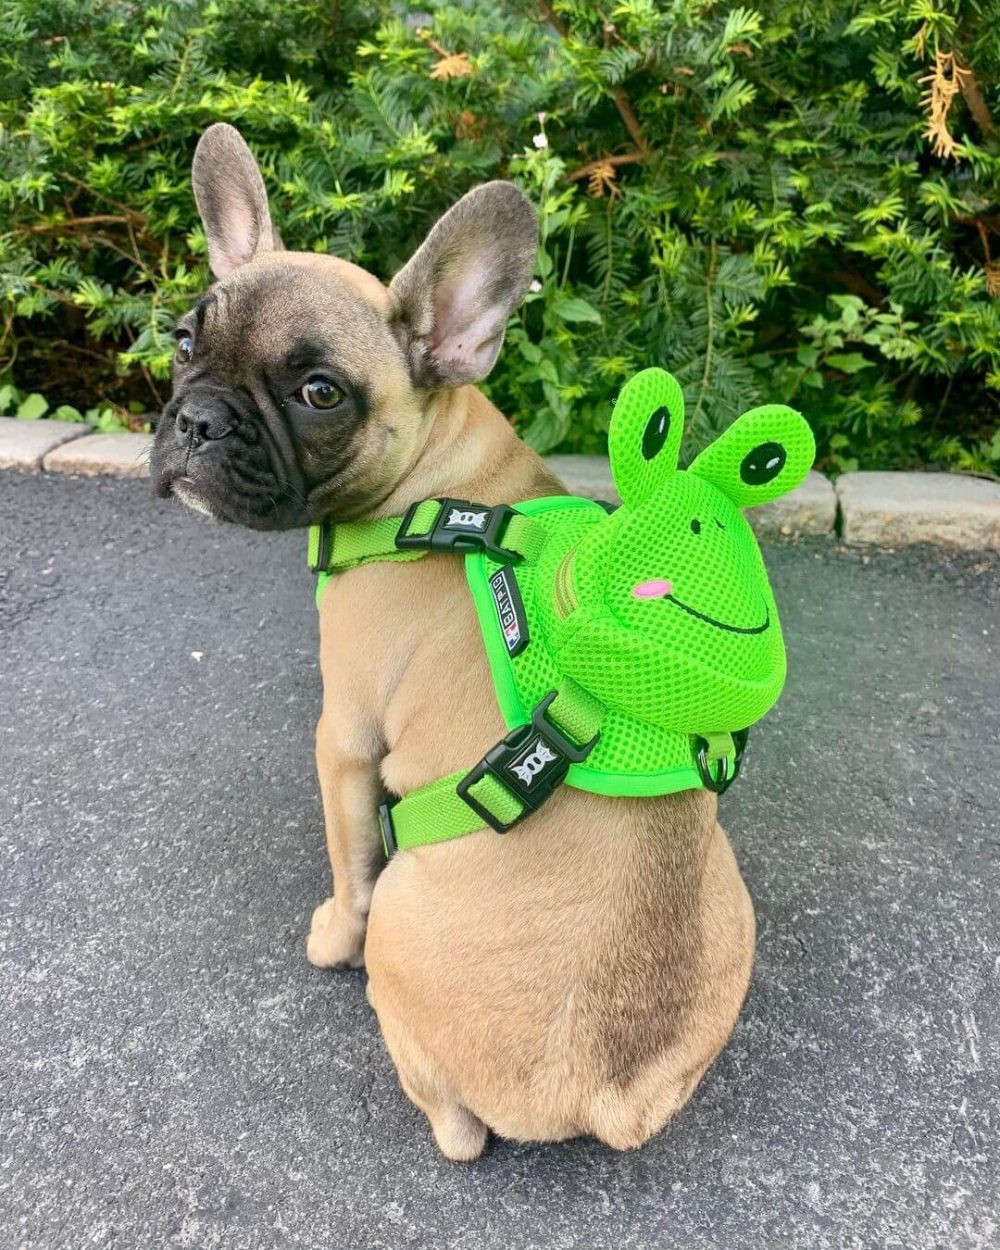 BATPIG Backpack Harness Frog Customer Photo 4